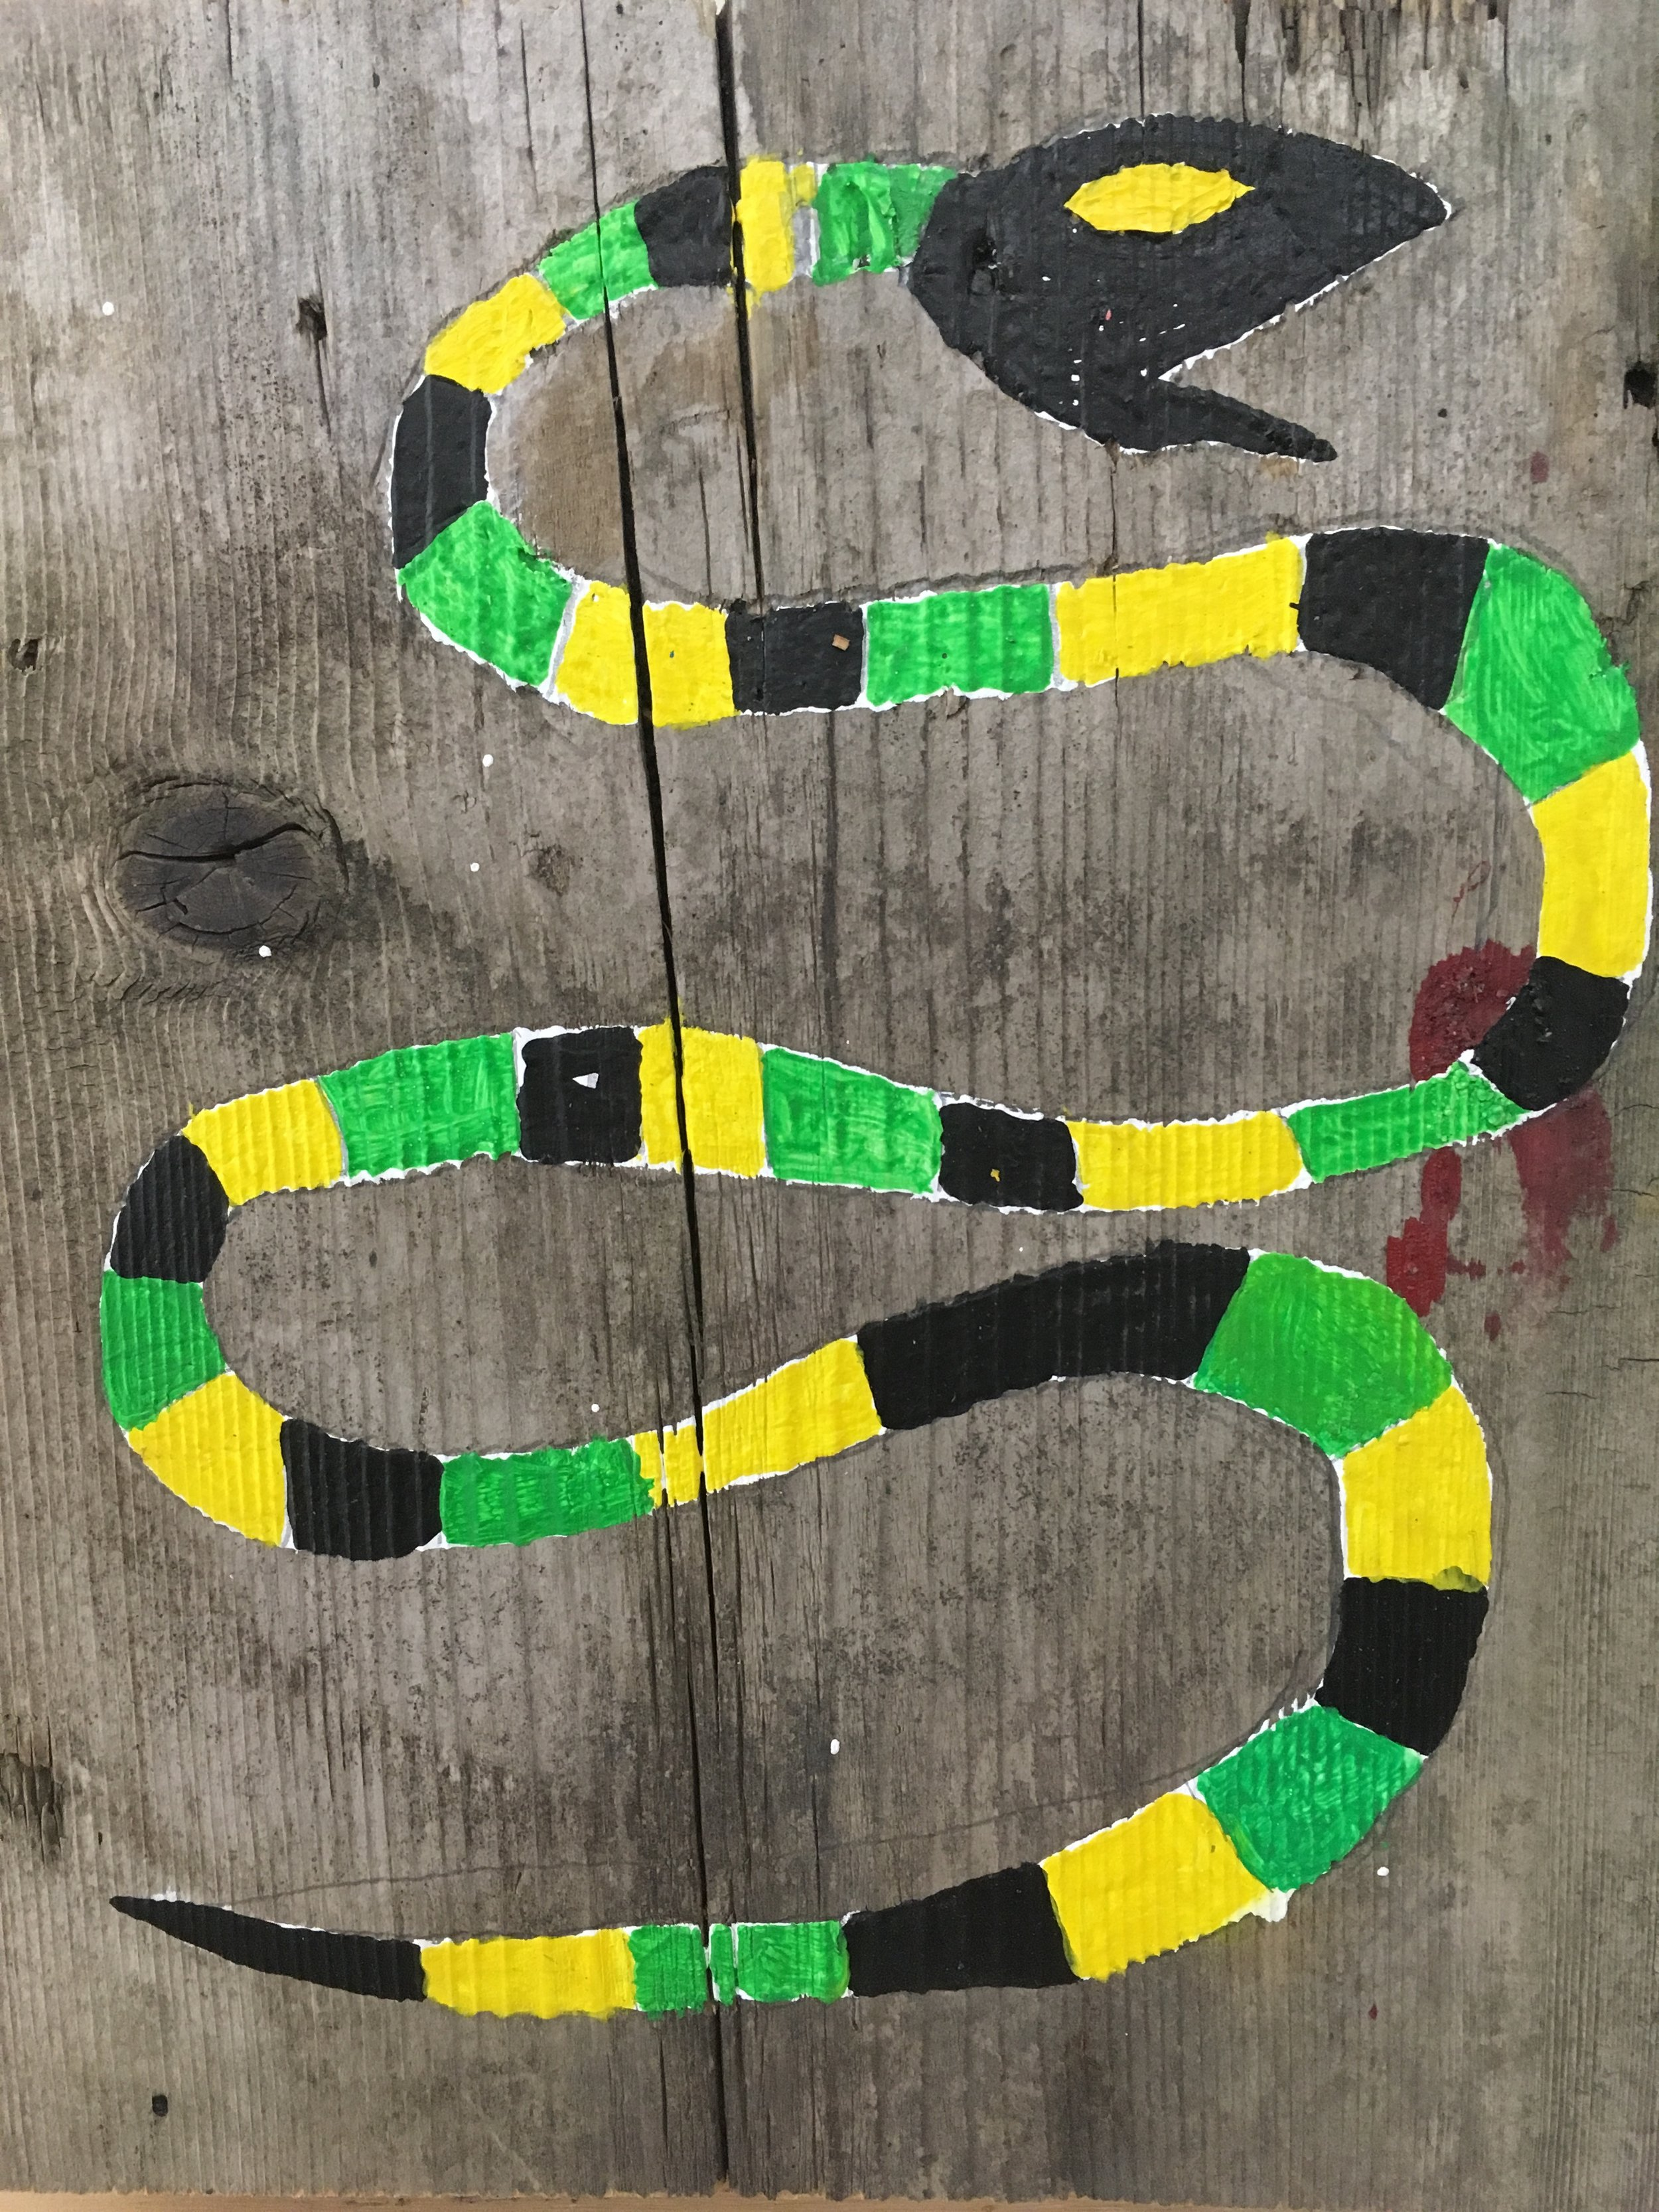 Romas Astrauskas,Untitled (Snake), 2017, acrylic on wood, 10.5 X 9 inches